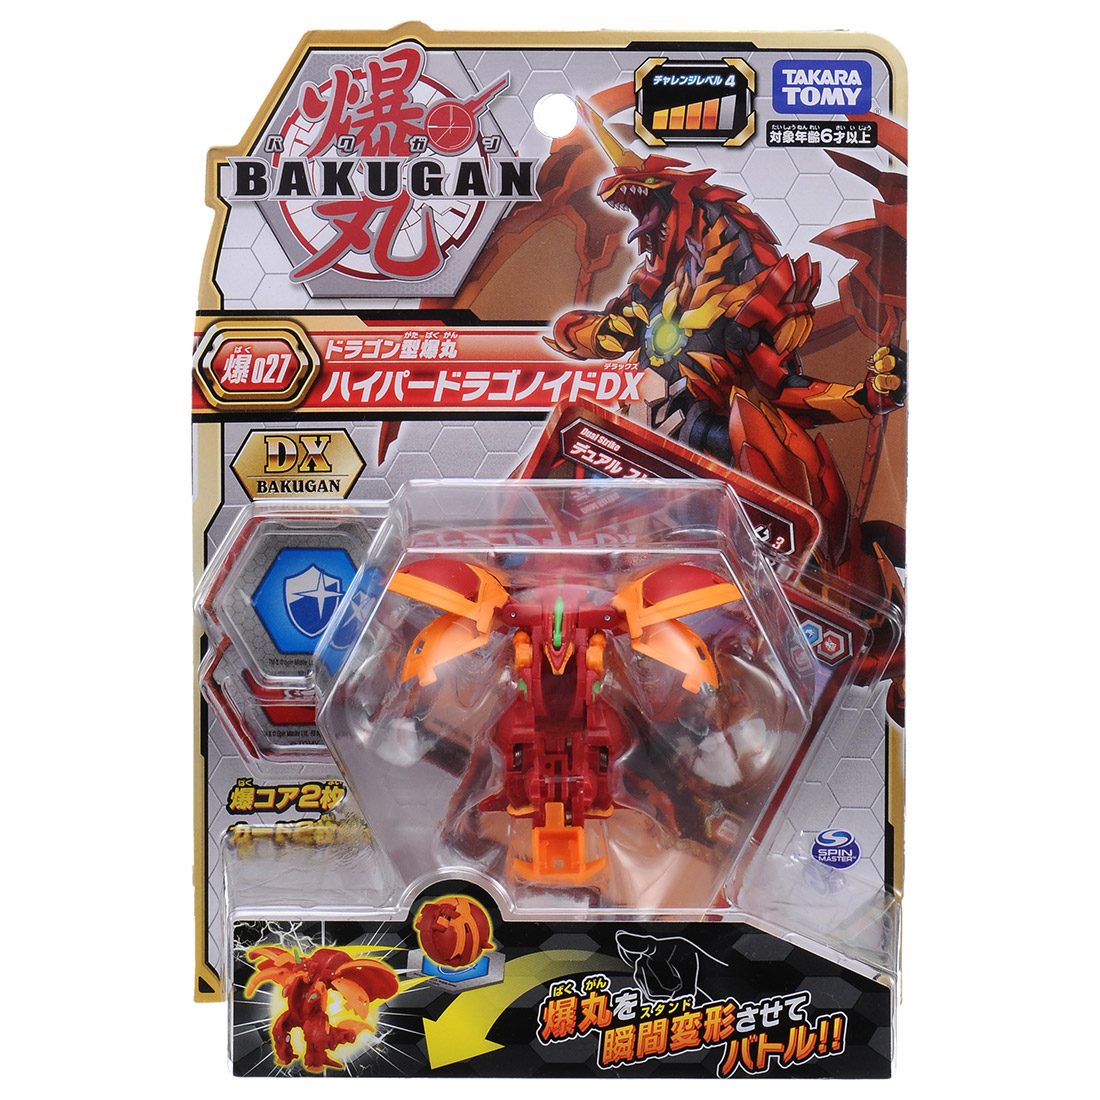 Takara Tomy Bakugan 027 <font><b>DX</b></font> Battle Brawlers Baku BakuCores Battle Planet Table Game Dragonoid Ball <font><b>Toys</b></font> for Kids Gifts image